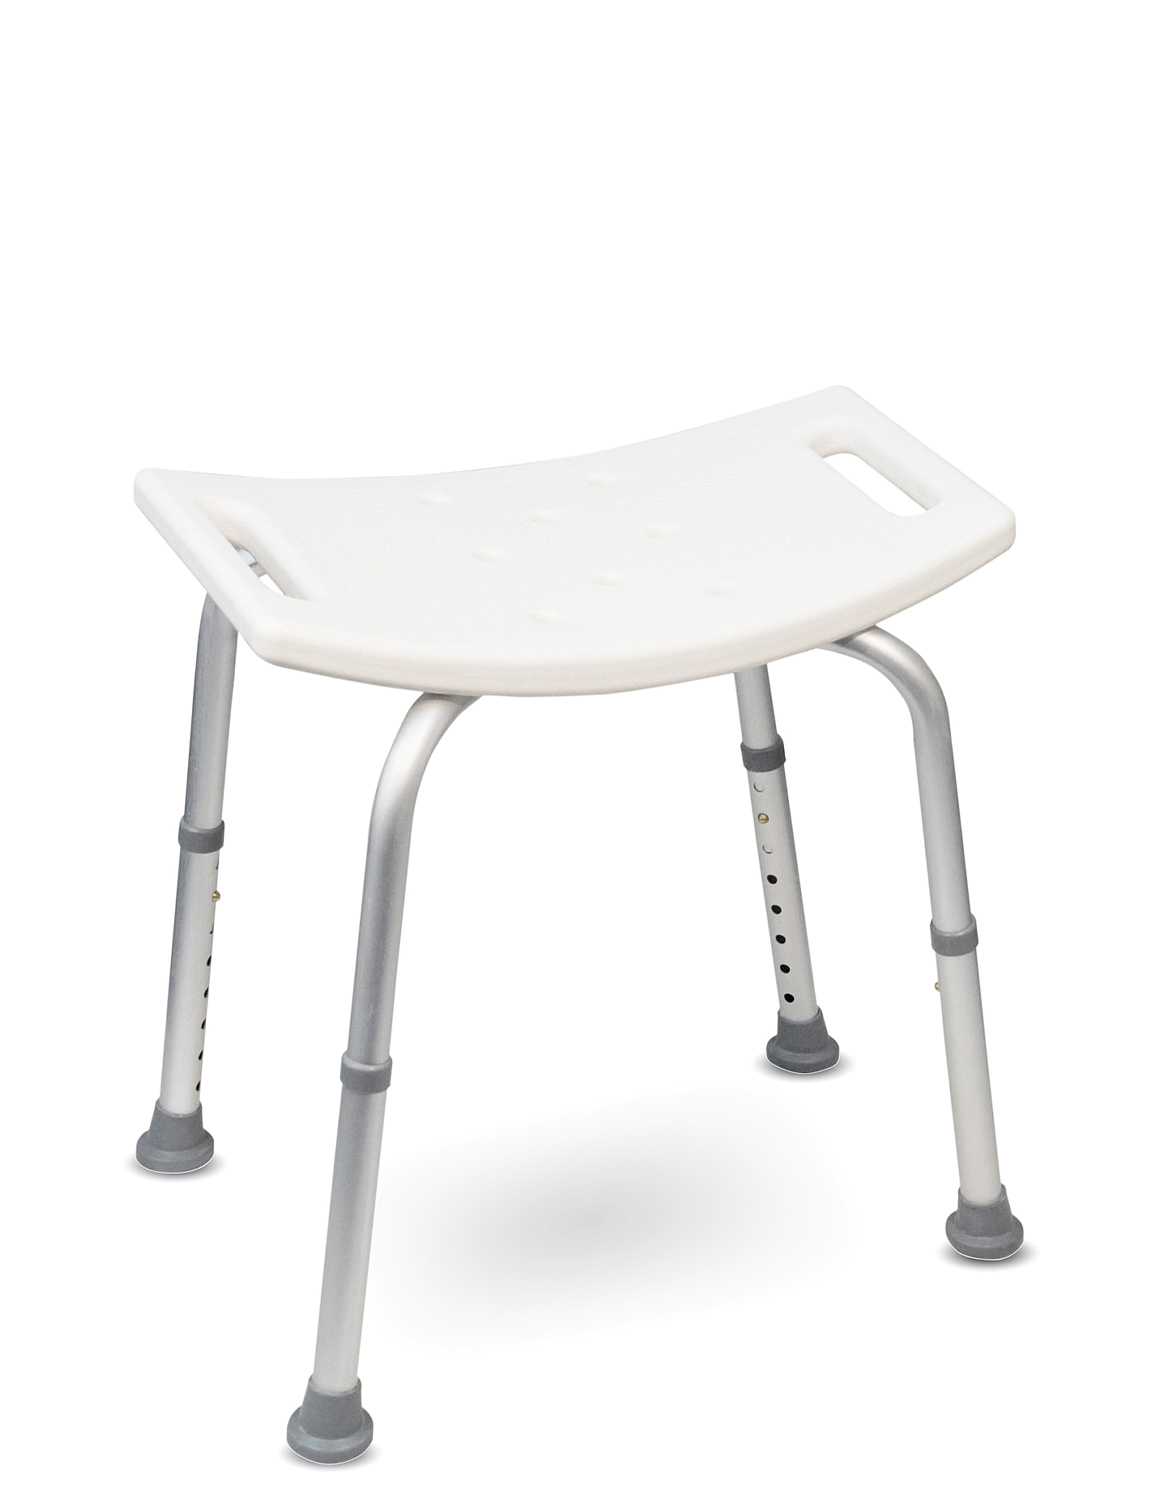 Shower Seat - White